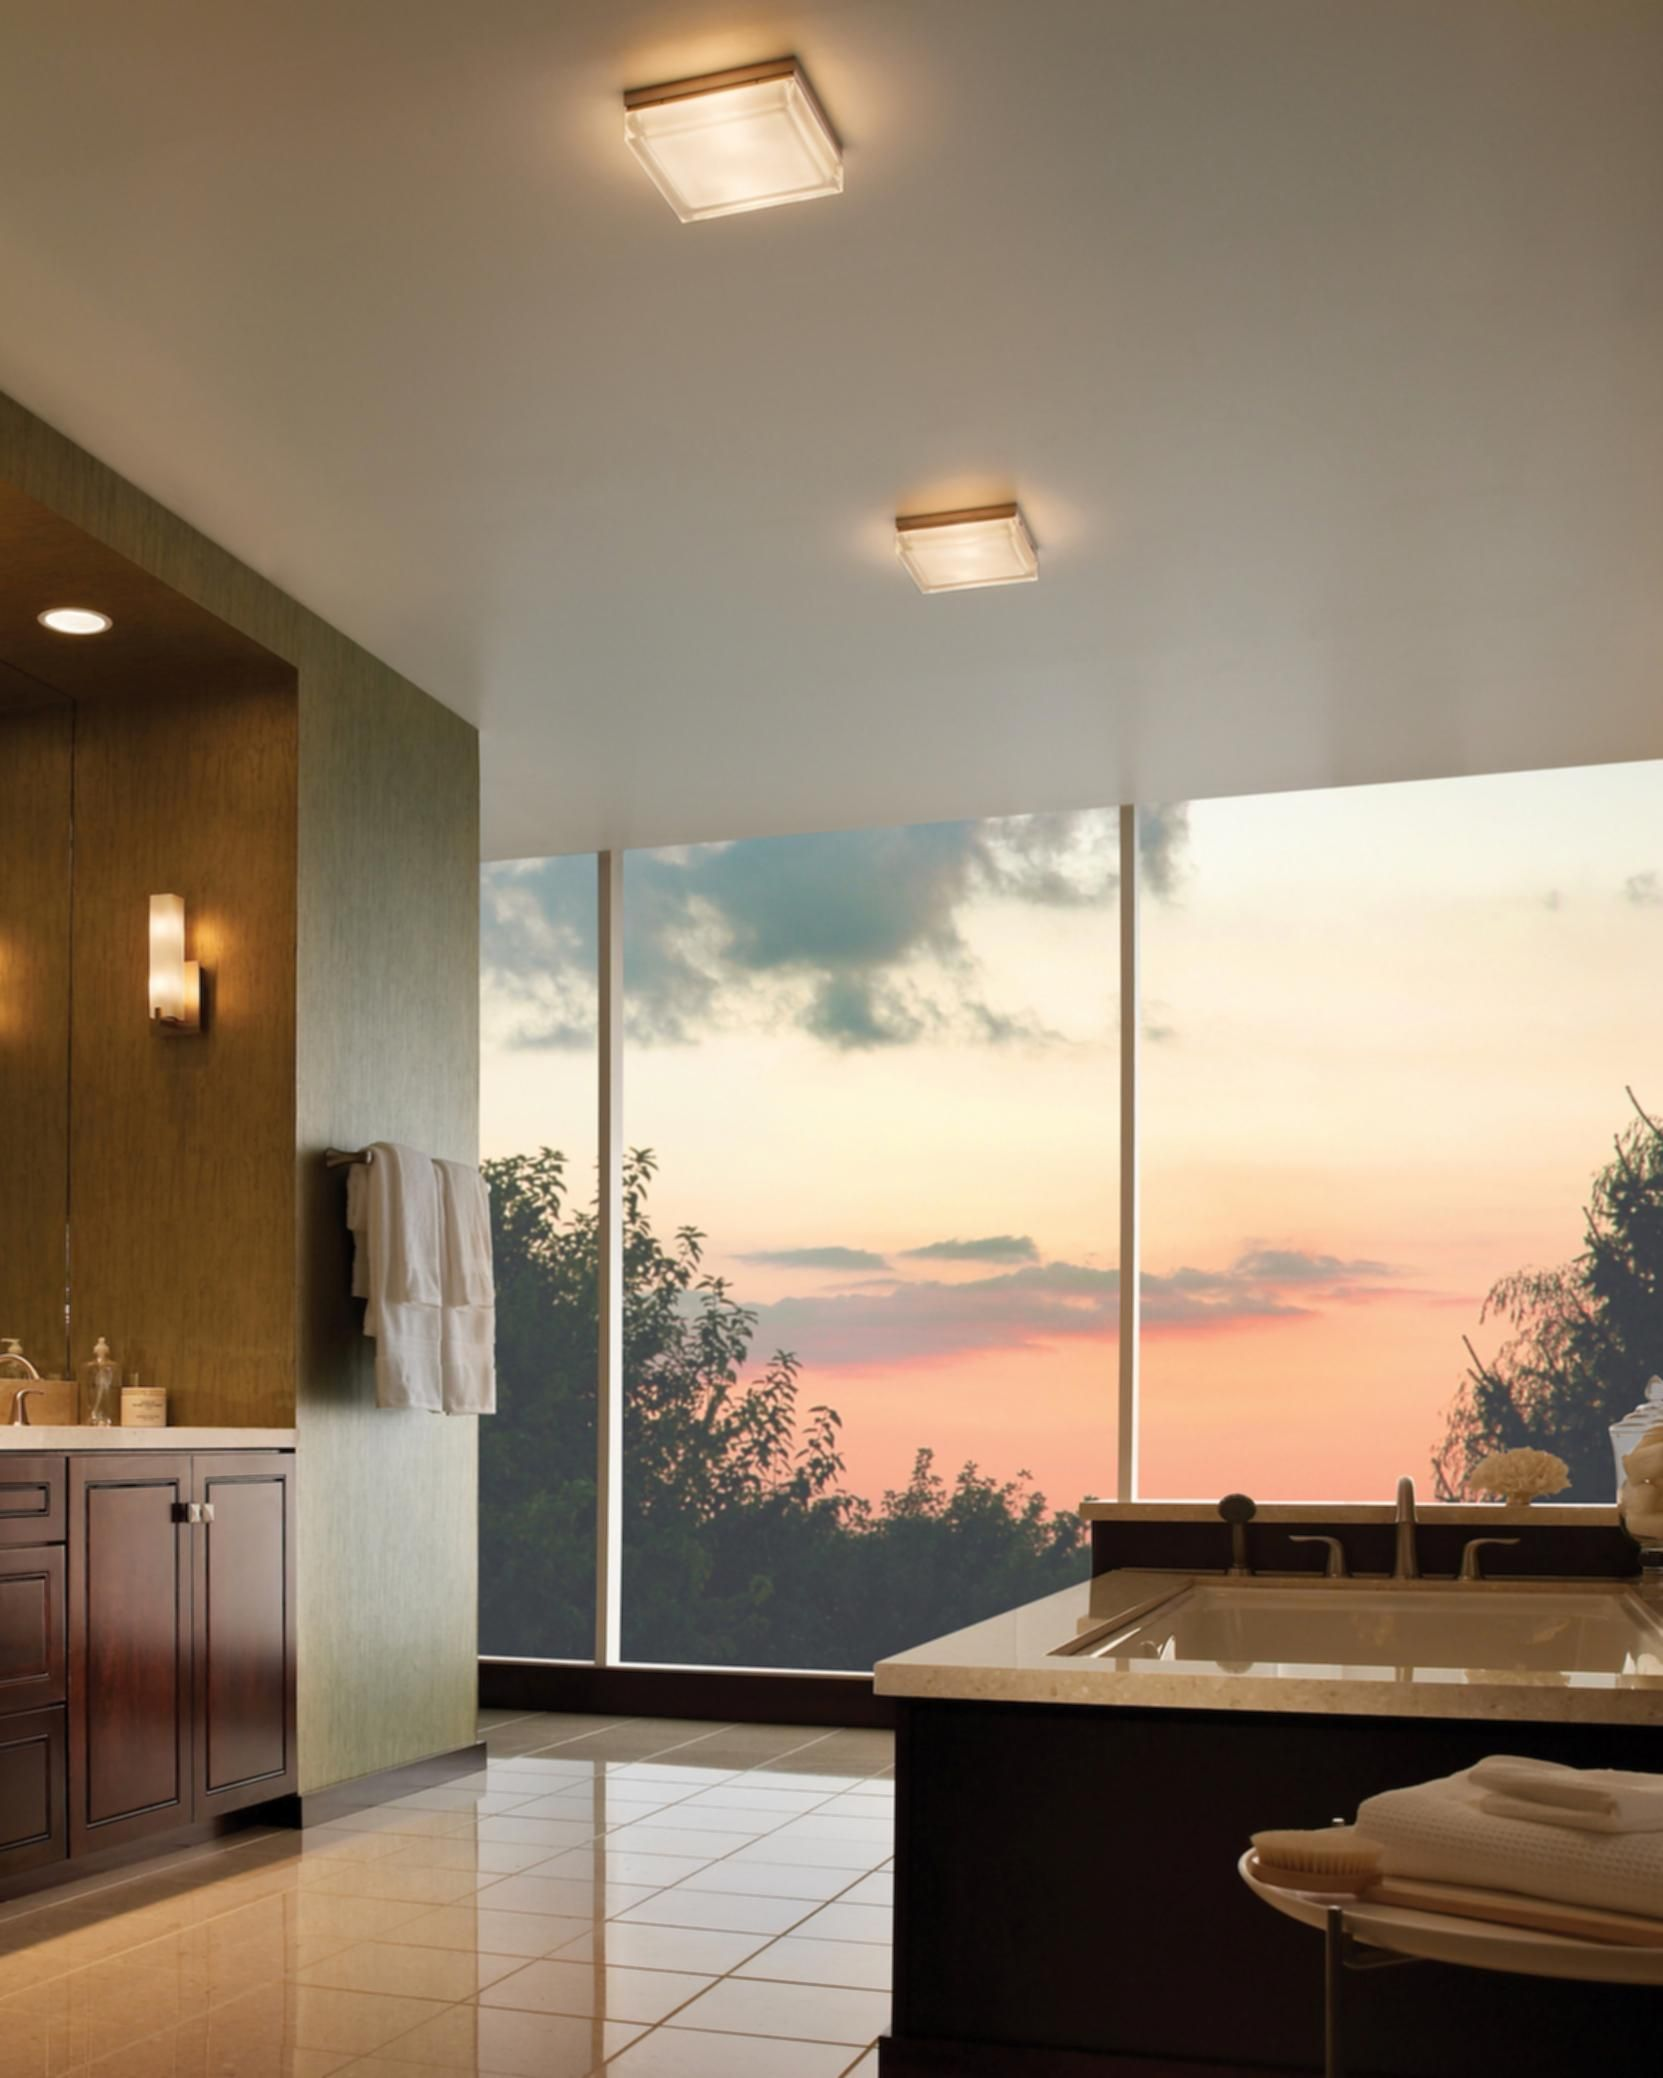 Image Result For Tech Lighting Boxie Ceiling Light Bathroom Light Fixtures Ceiling Bathroom